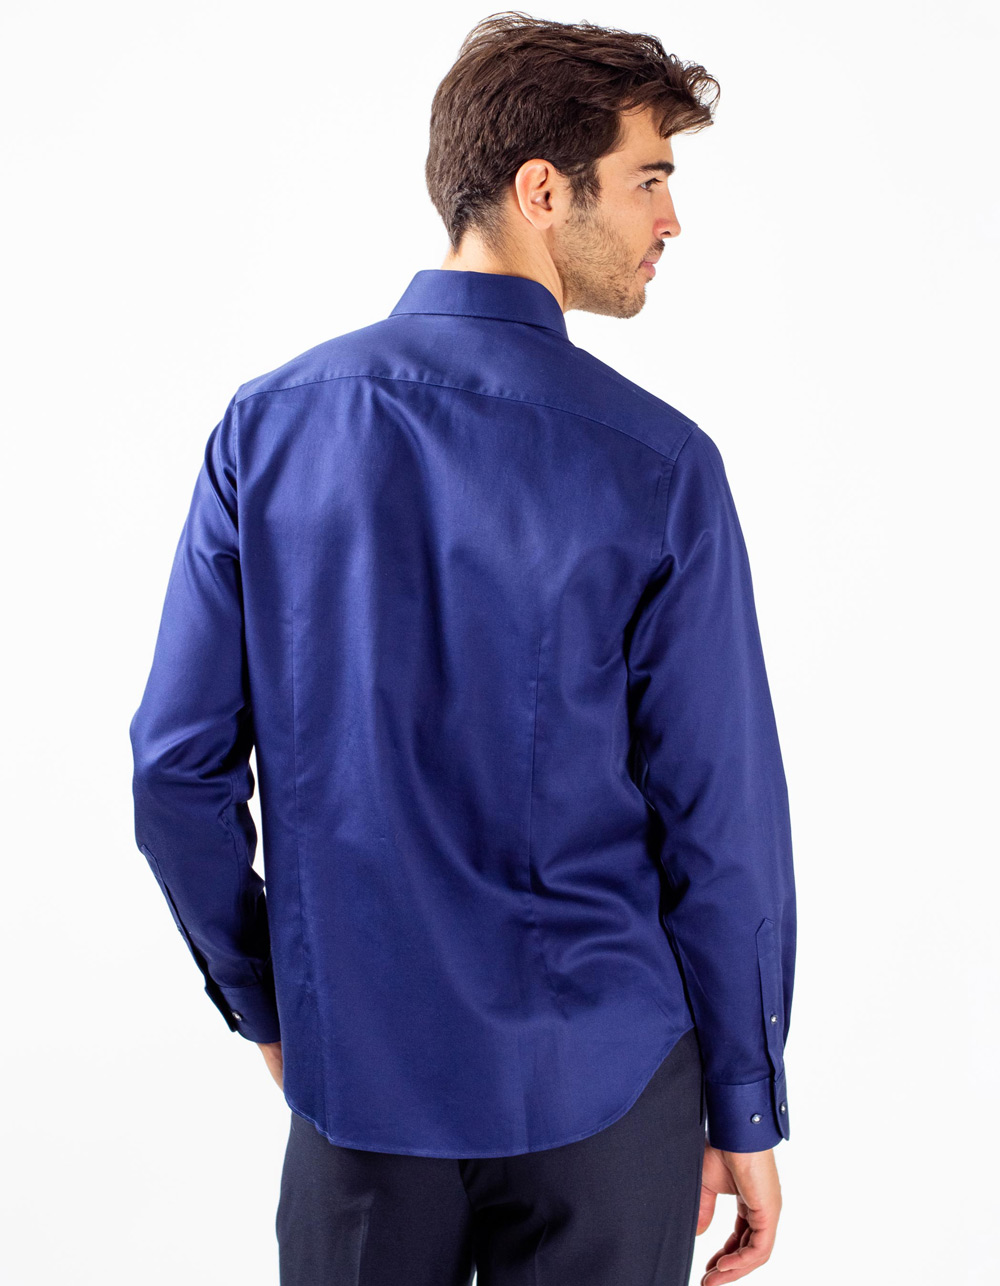 Navy plain shirt - Backside